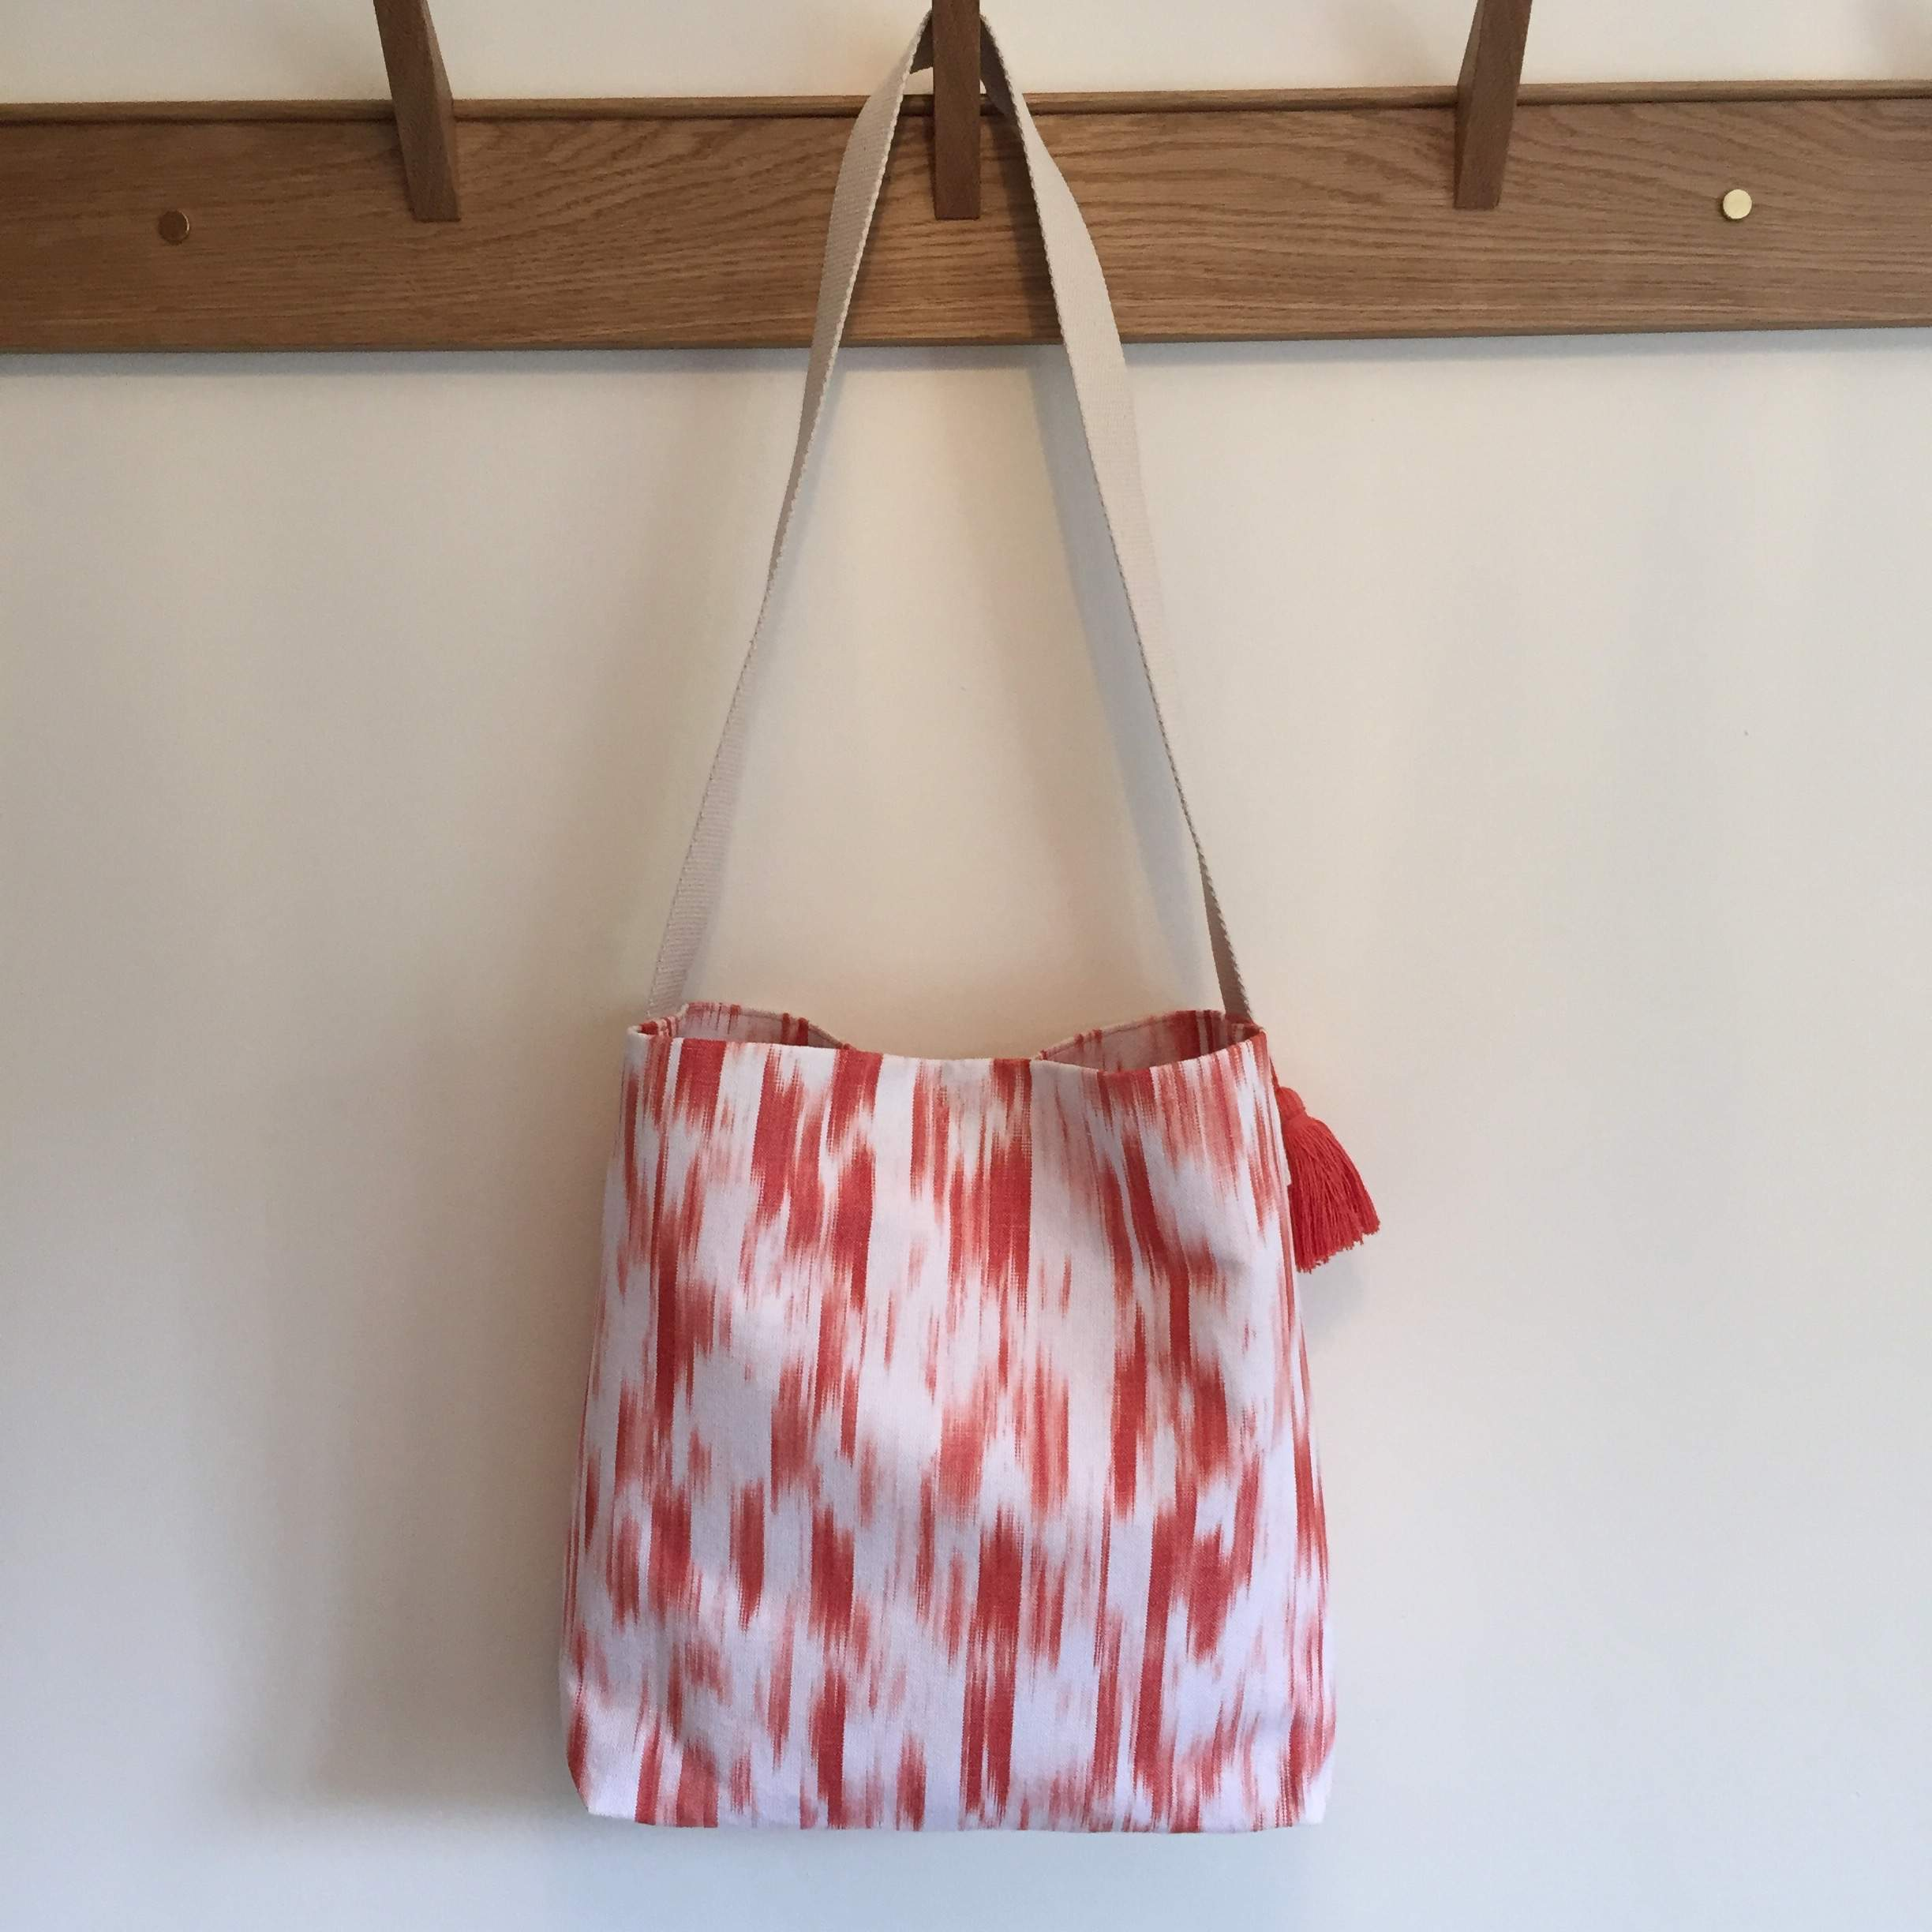 Coral Ikat Shoulder Bag with Tassel